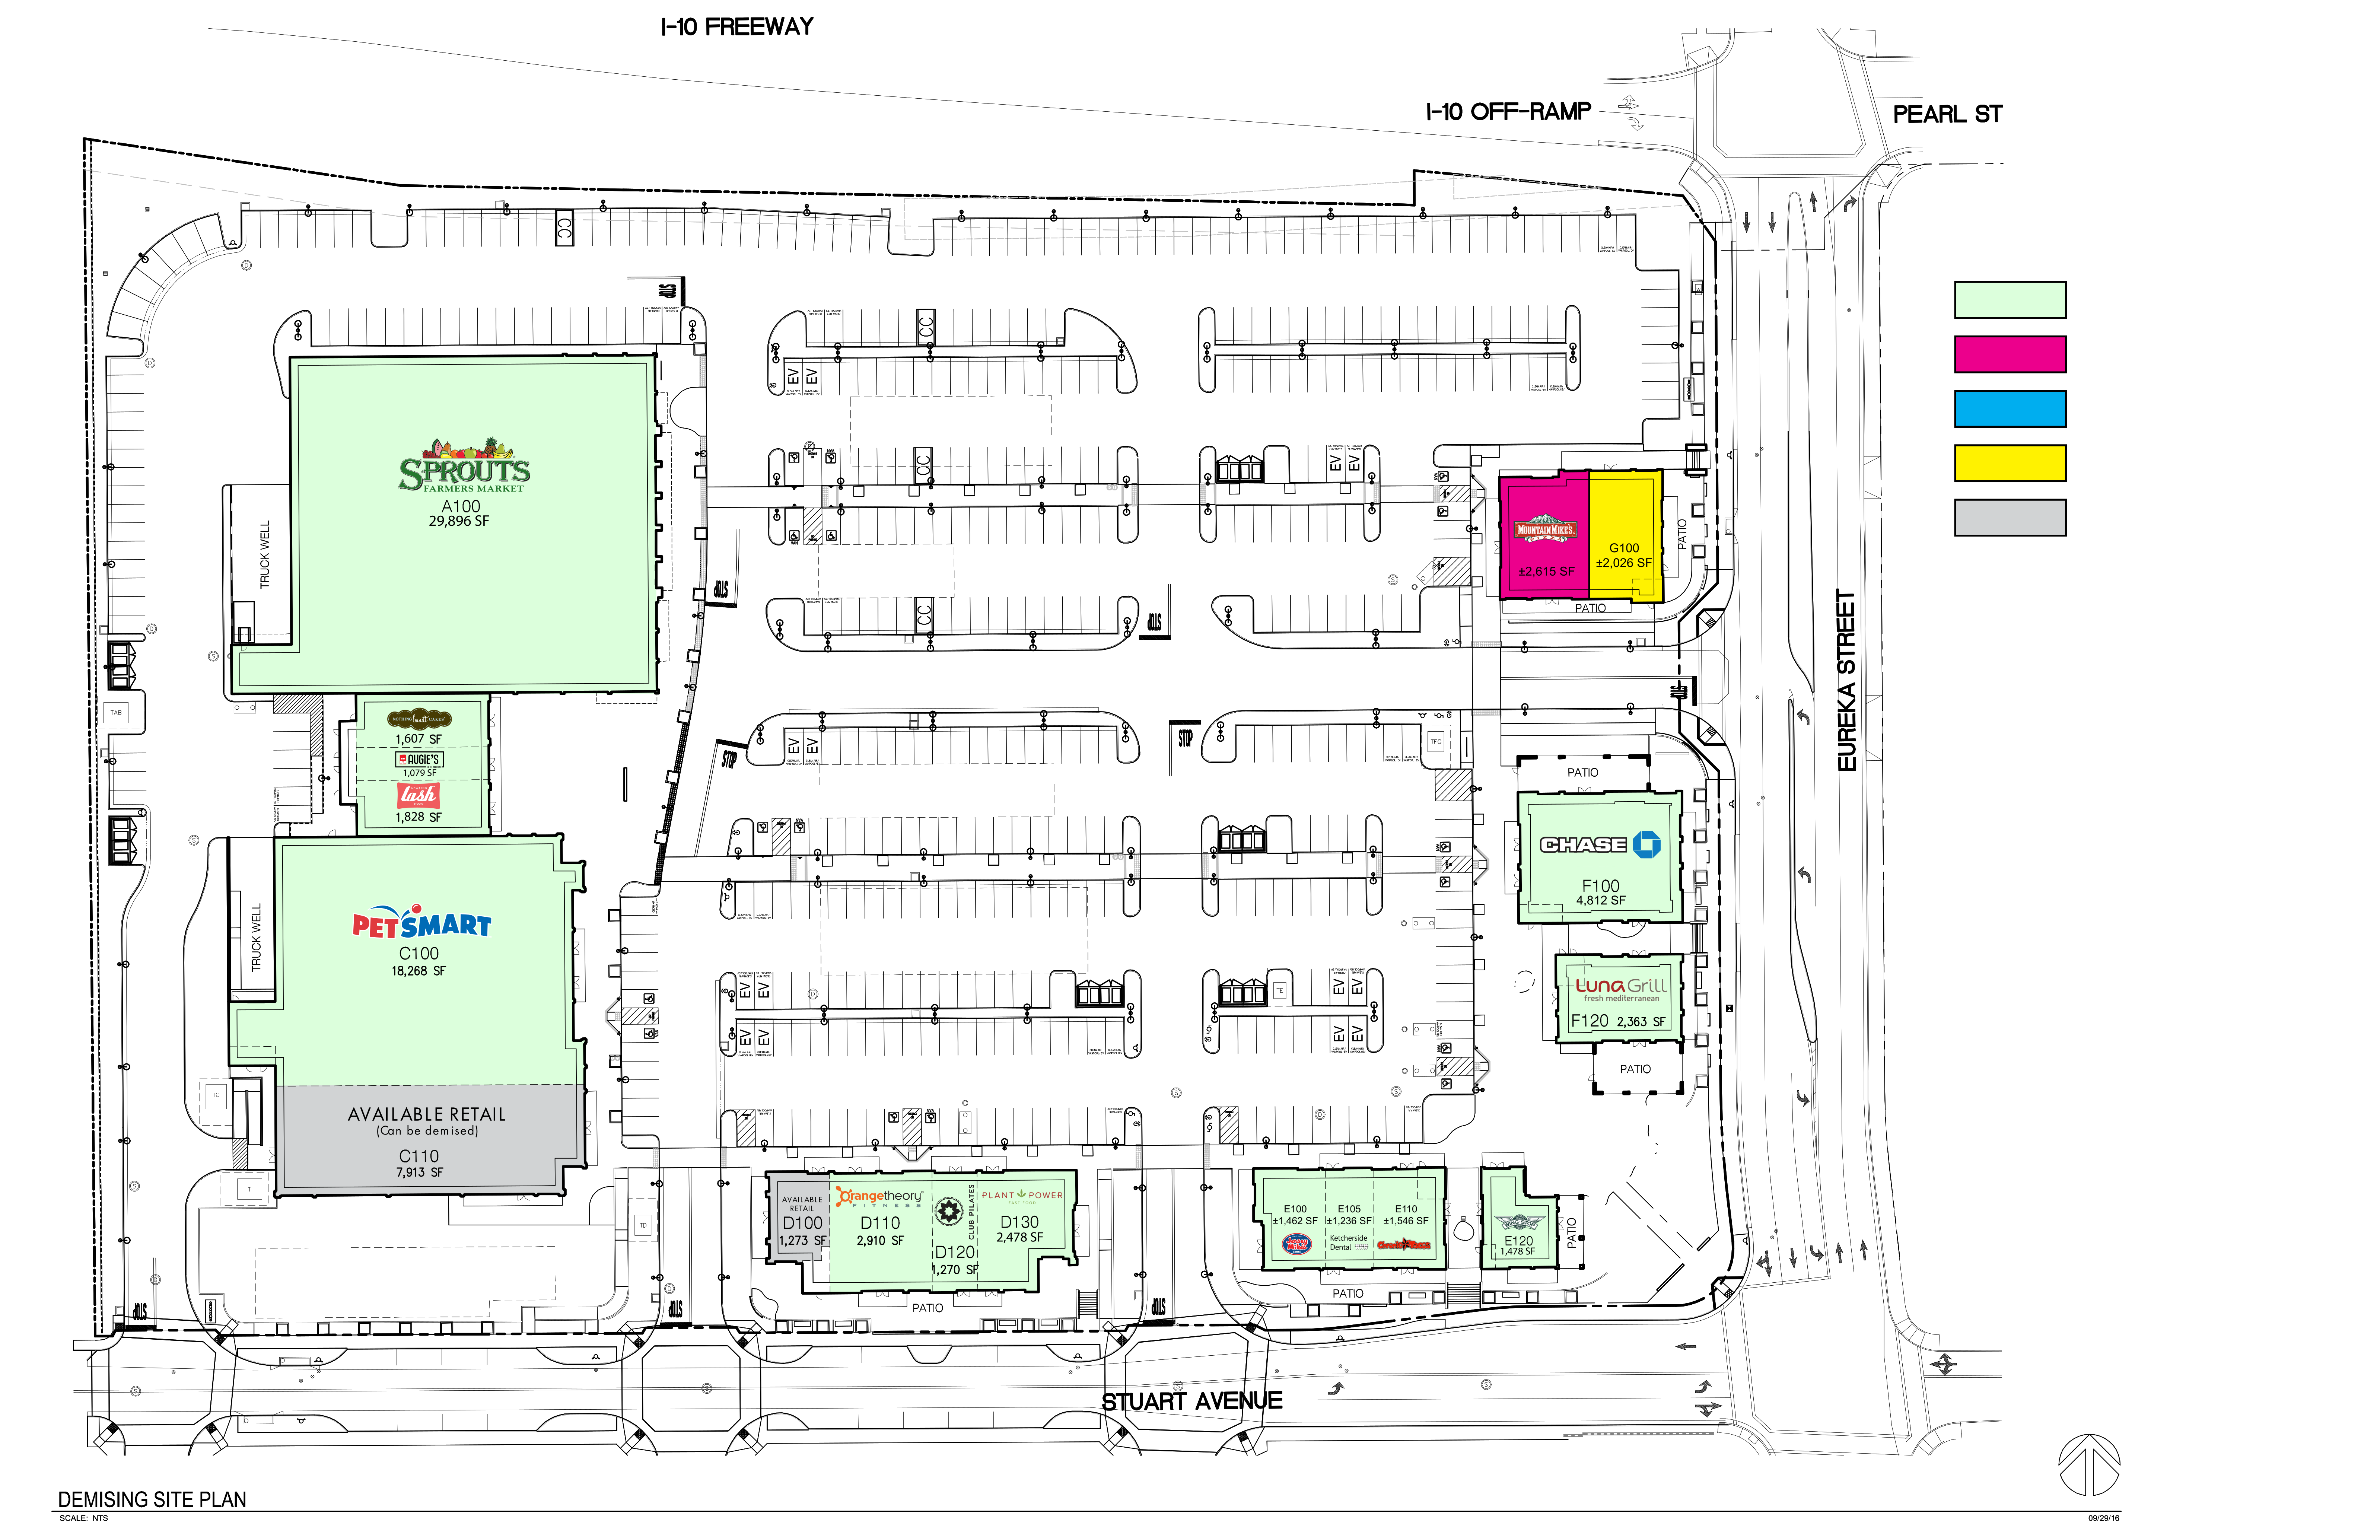 Redlands Packing House District: site plan